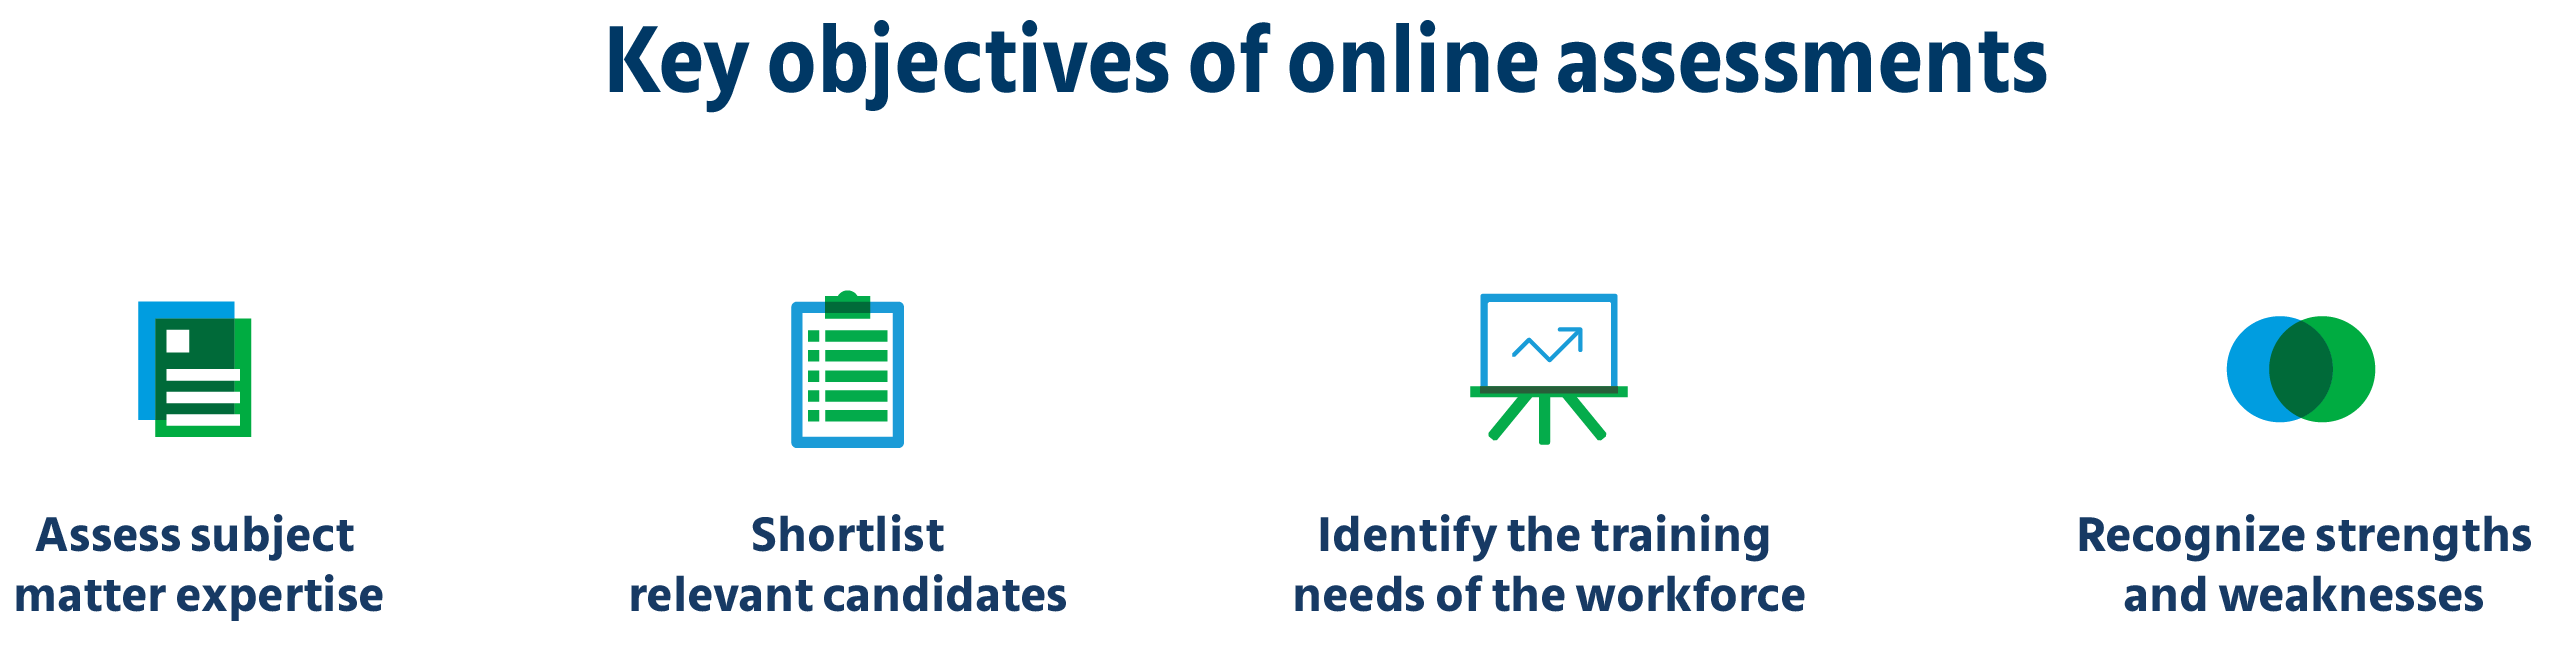 key_objectives_of_online_assessments